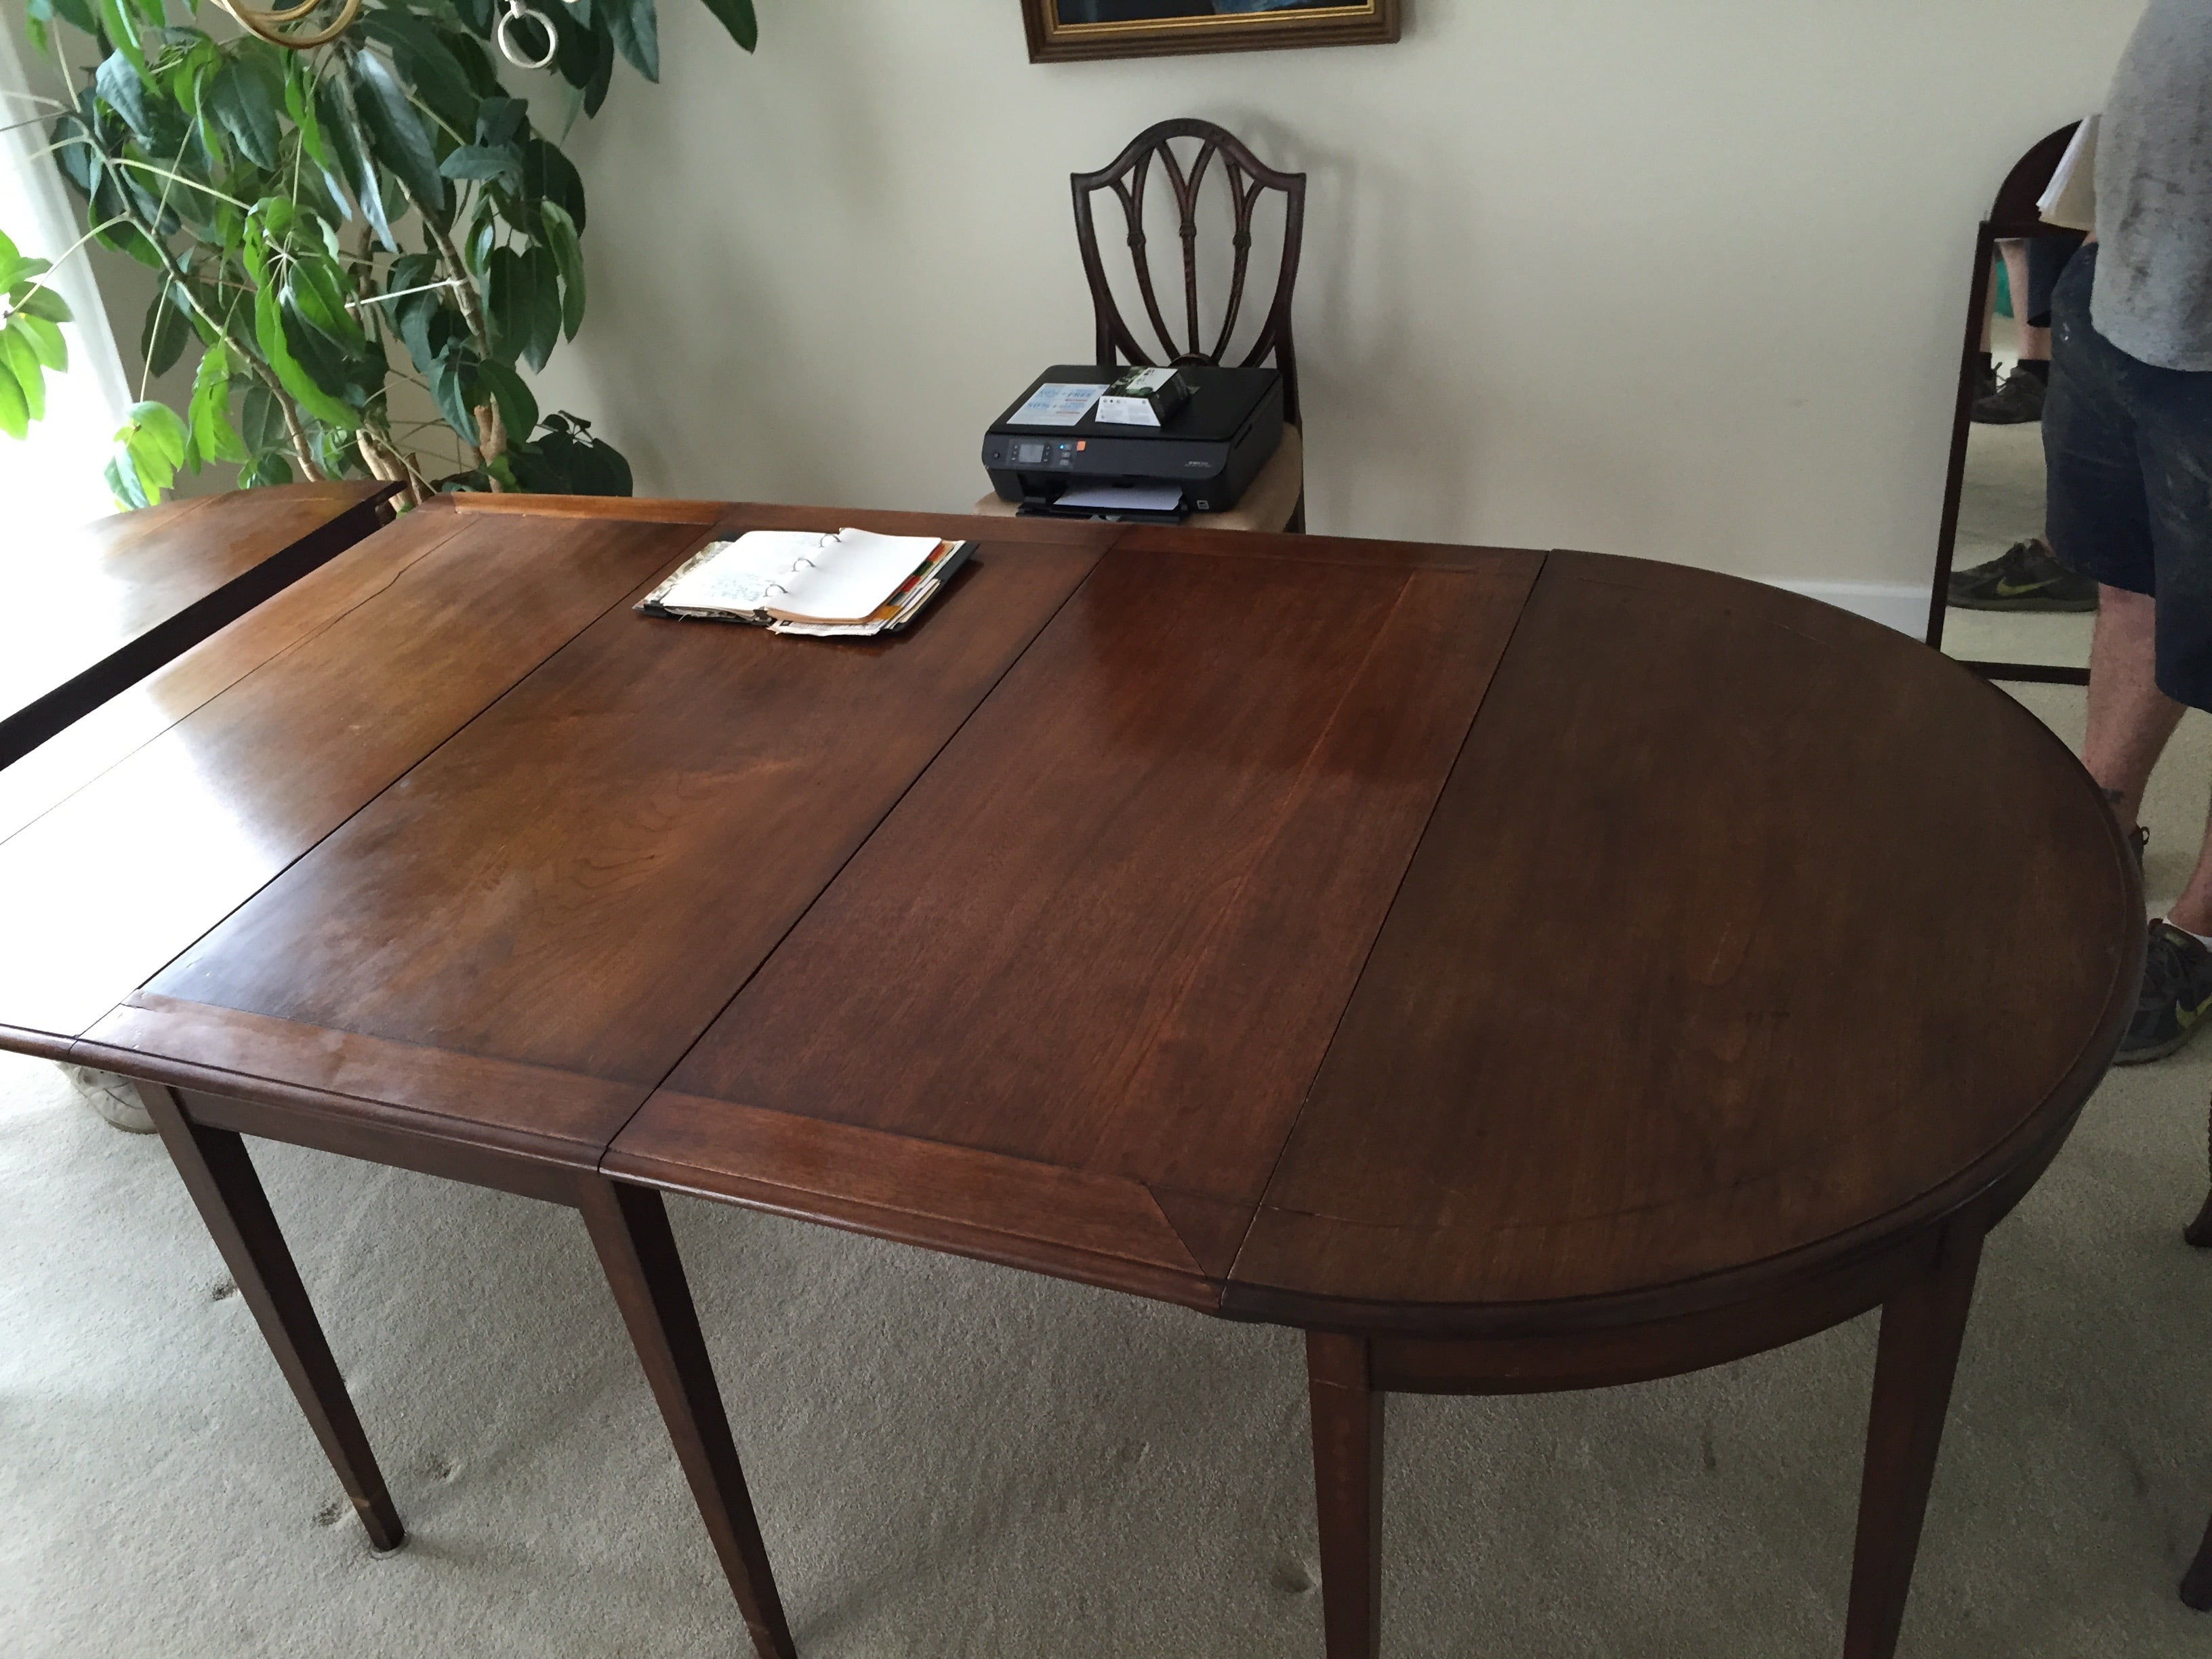 With All The Tables Positives, It Was Desperately In The Need Of A Full  Restoration. The Gentleman Stated Prior To His Decades Of Ownership, ...